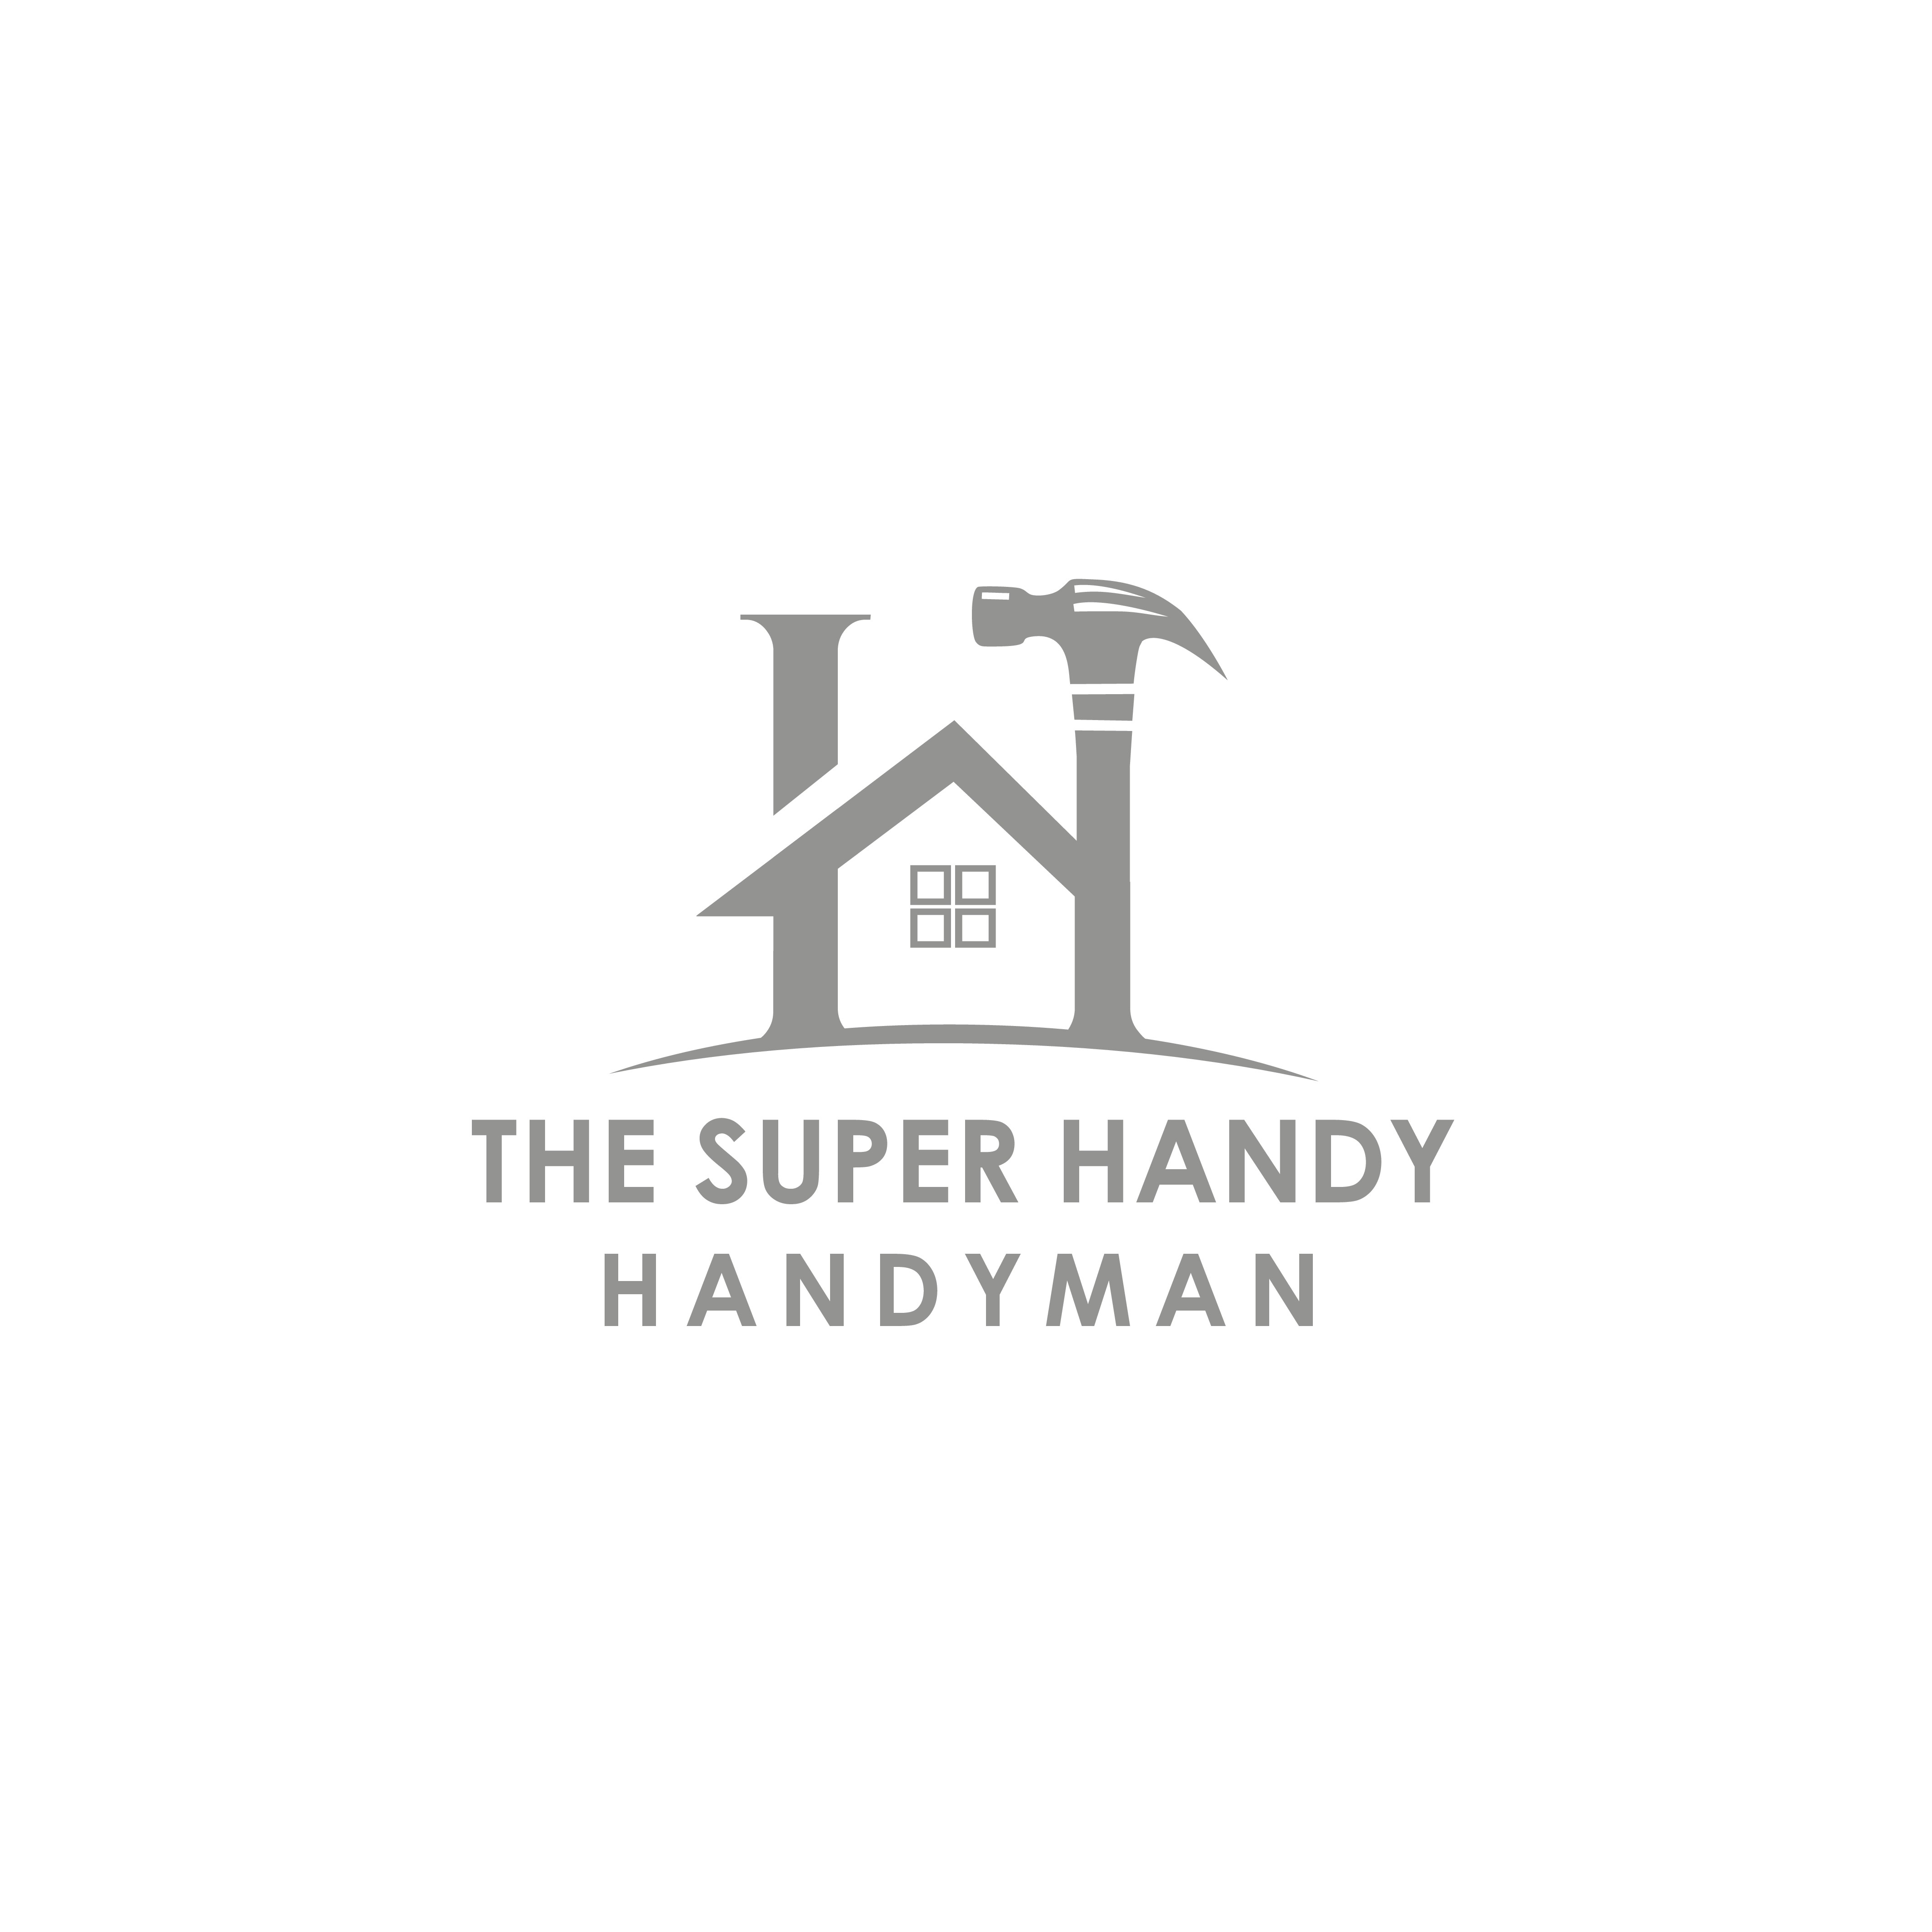 Looking for a logo that conveys skill and professionalism for a handyman.